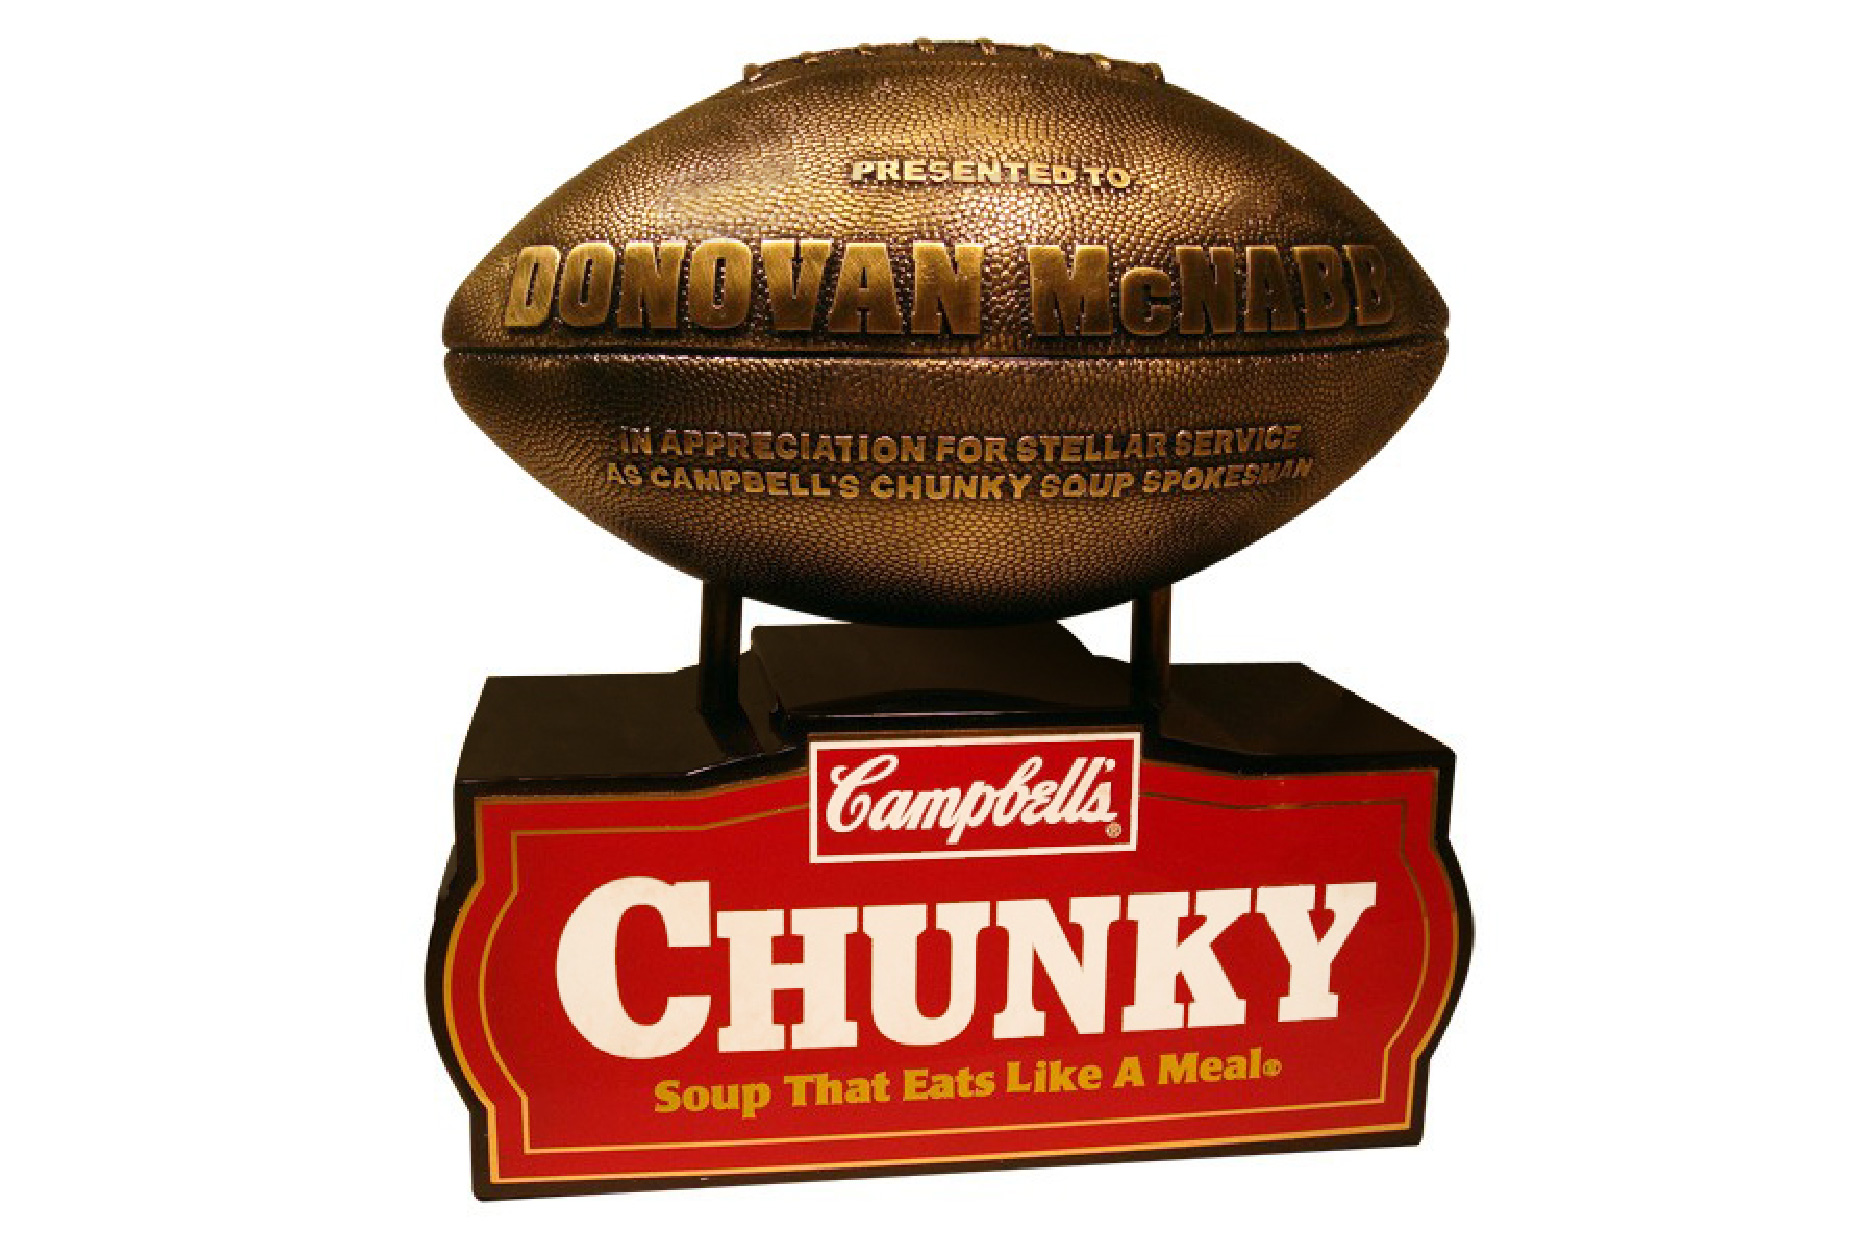 Campbells Chunky Soup Football Trophy